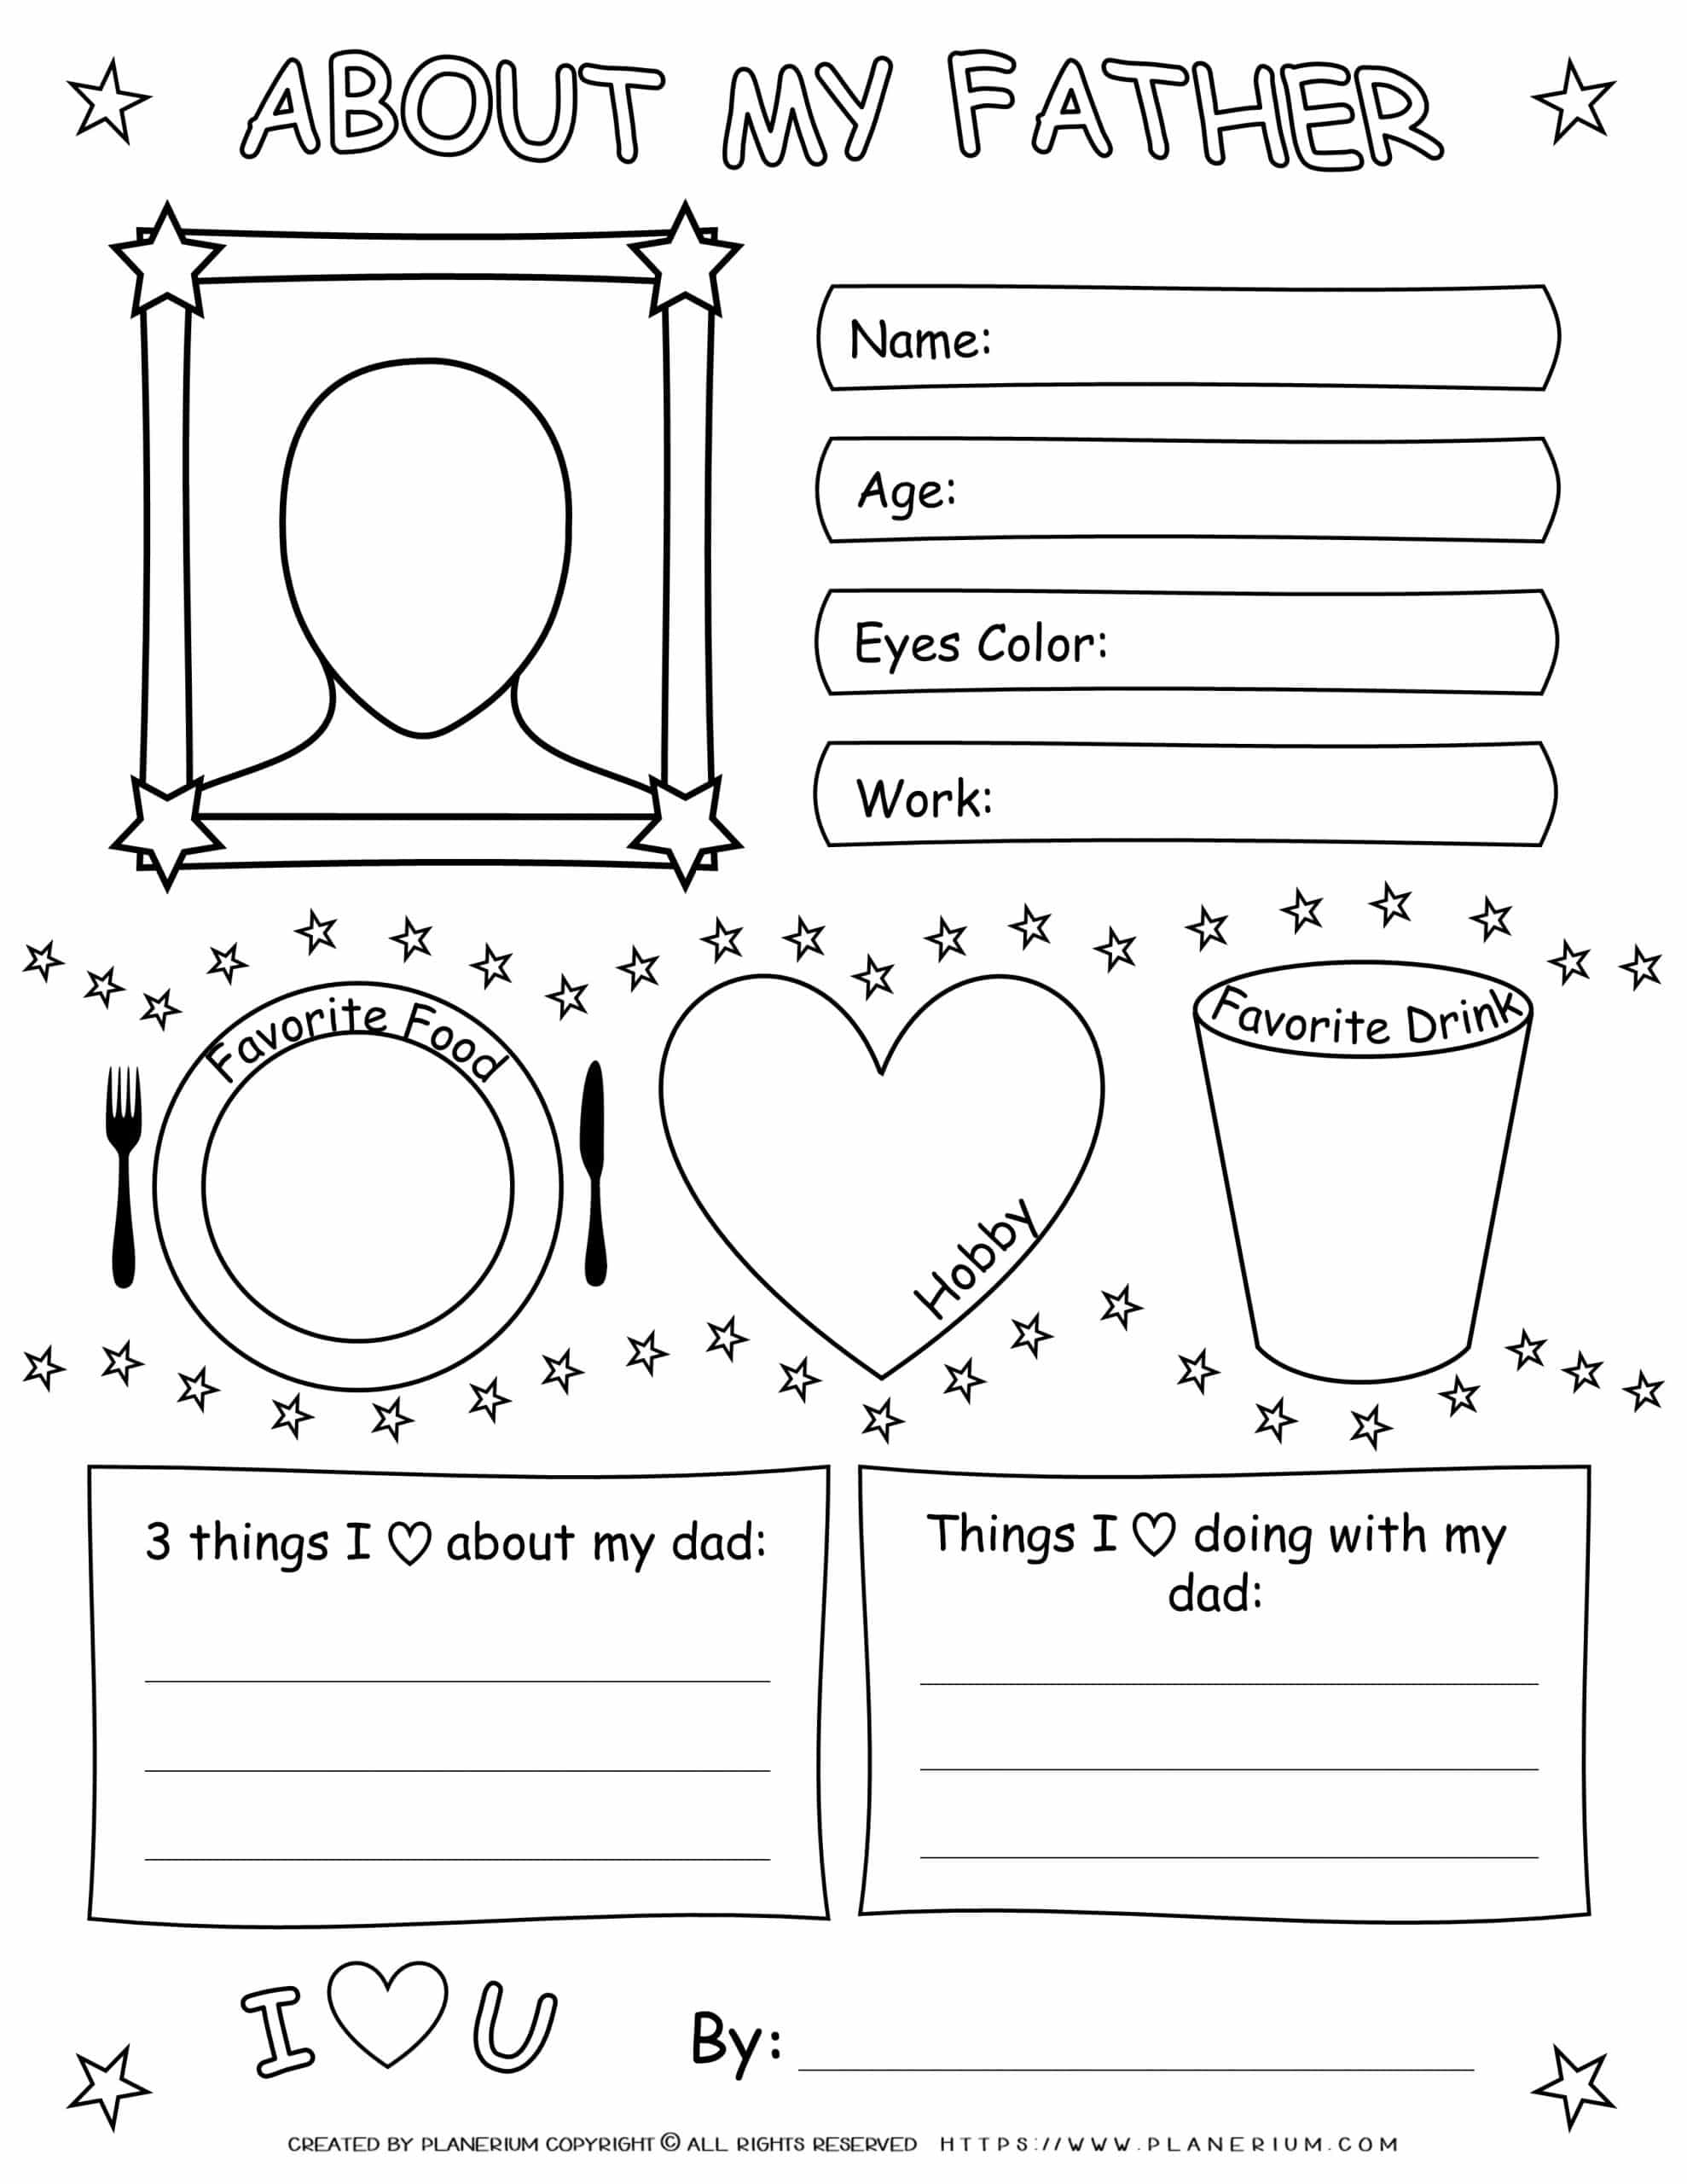 Father's Day - Worksheet - About My Dad